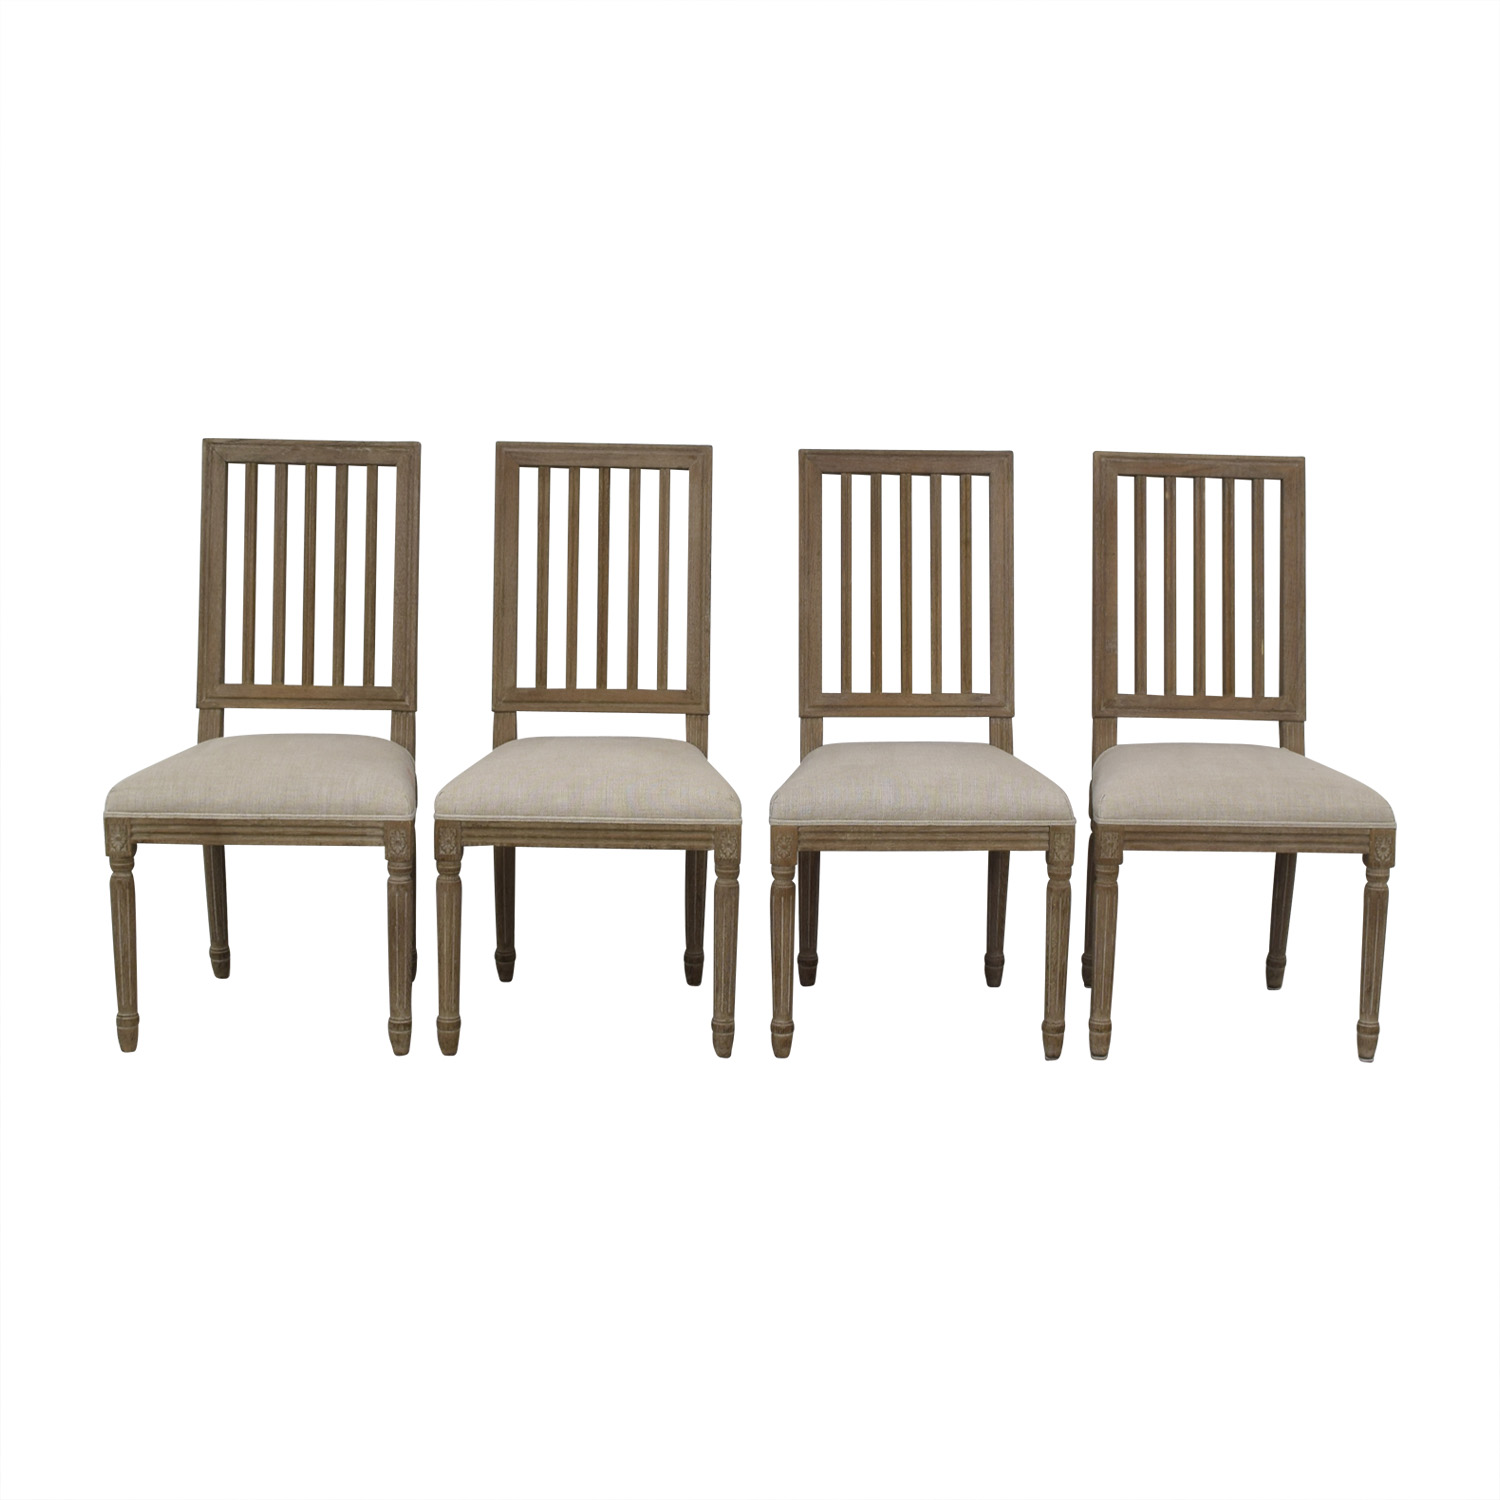 Restoration Hardware Dining Chairs 69 Off Restoration Hardware Restoration Hardware Spindle Back Dining Chairs Chairs